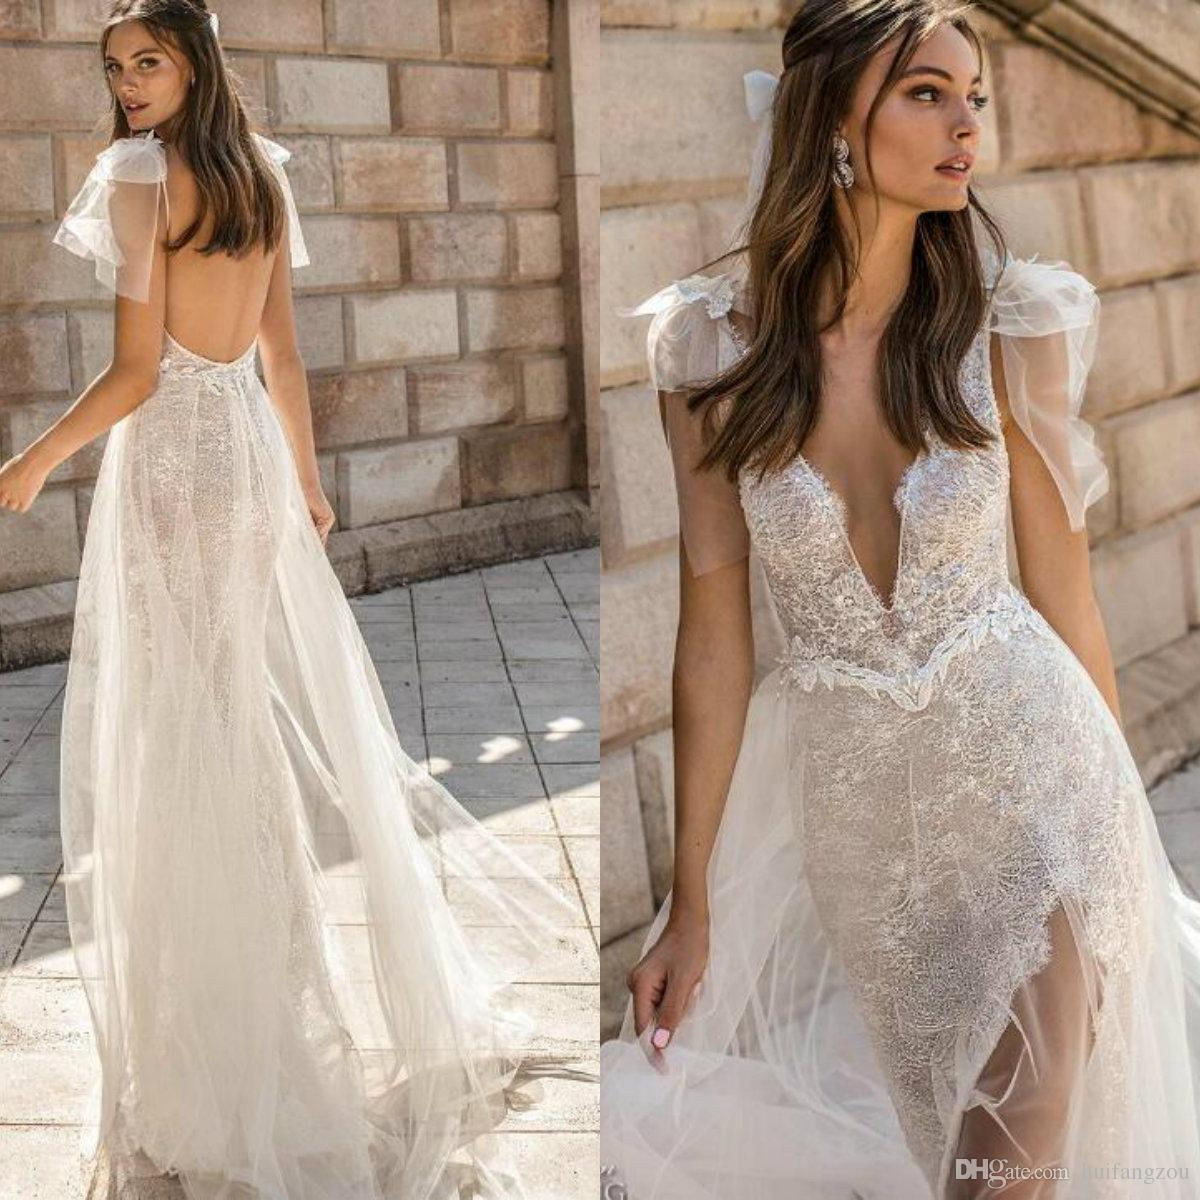 b86fa150ac62 Muse By Berta 2019 Wedding Dresses Deep V Neck Lace Appliques Beaded Thigh High  Slits Wedding Dress Backless Bridal Gowns Chiffon Wedding Dresses Designer  ...